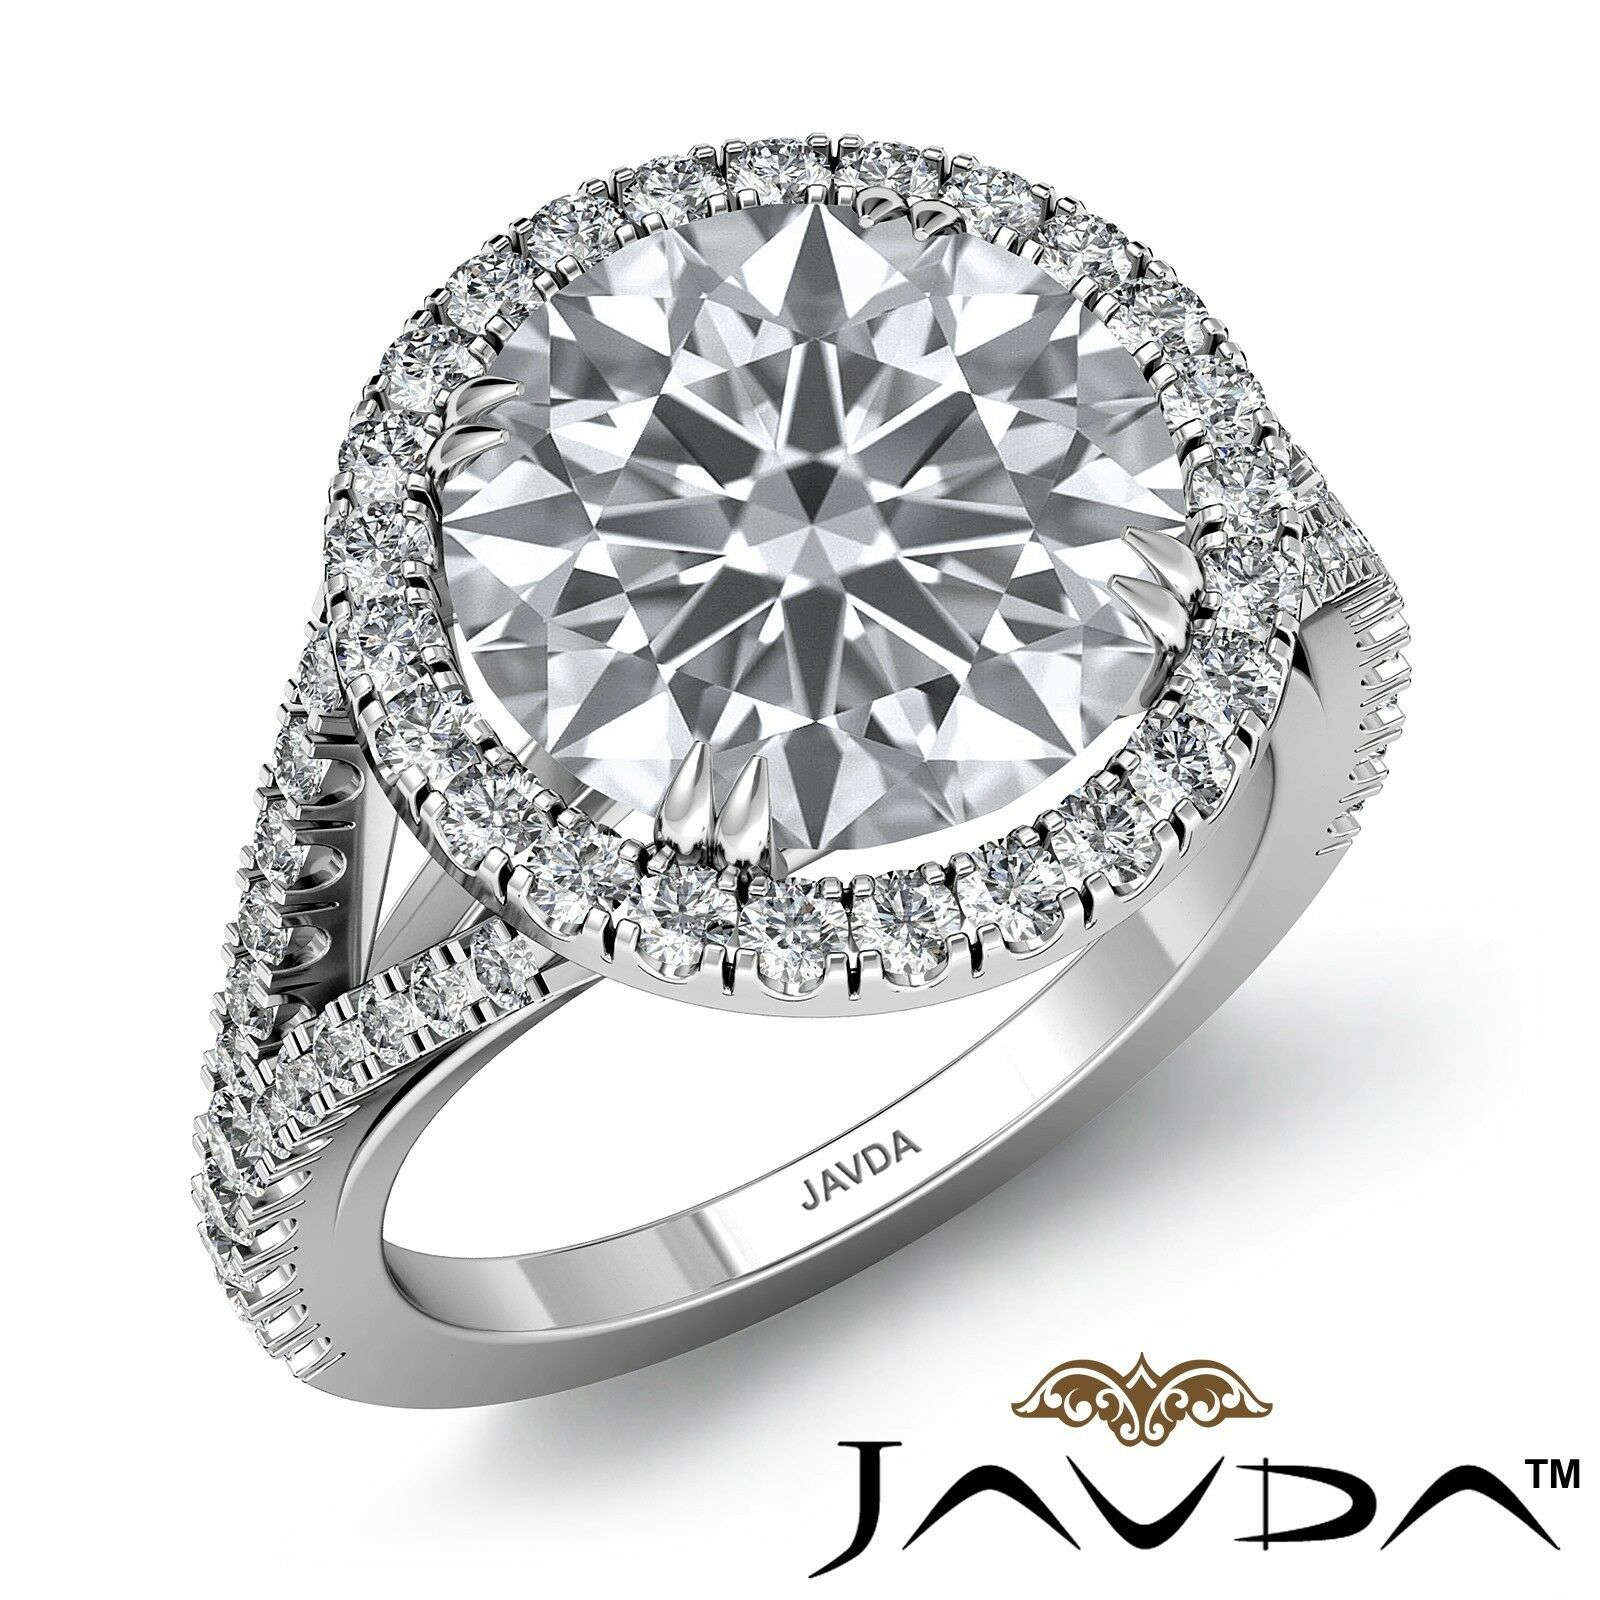 4.45ctw Heavy Design Round Diamond Engagement Ring GIA G-VS2 Platinum Women New